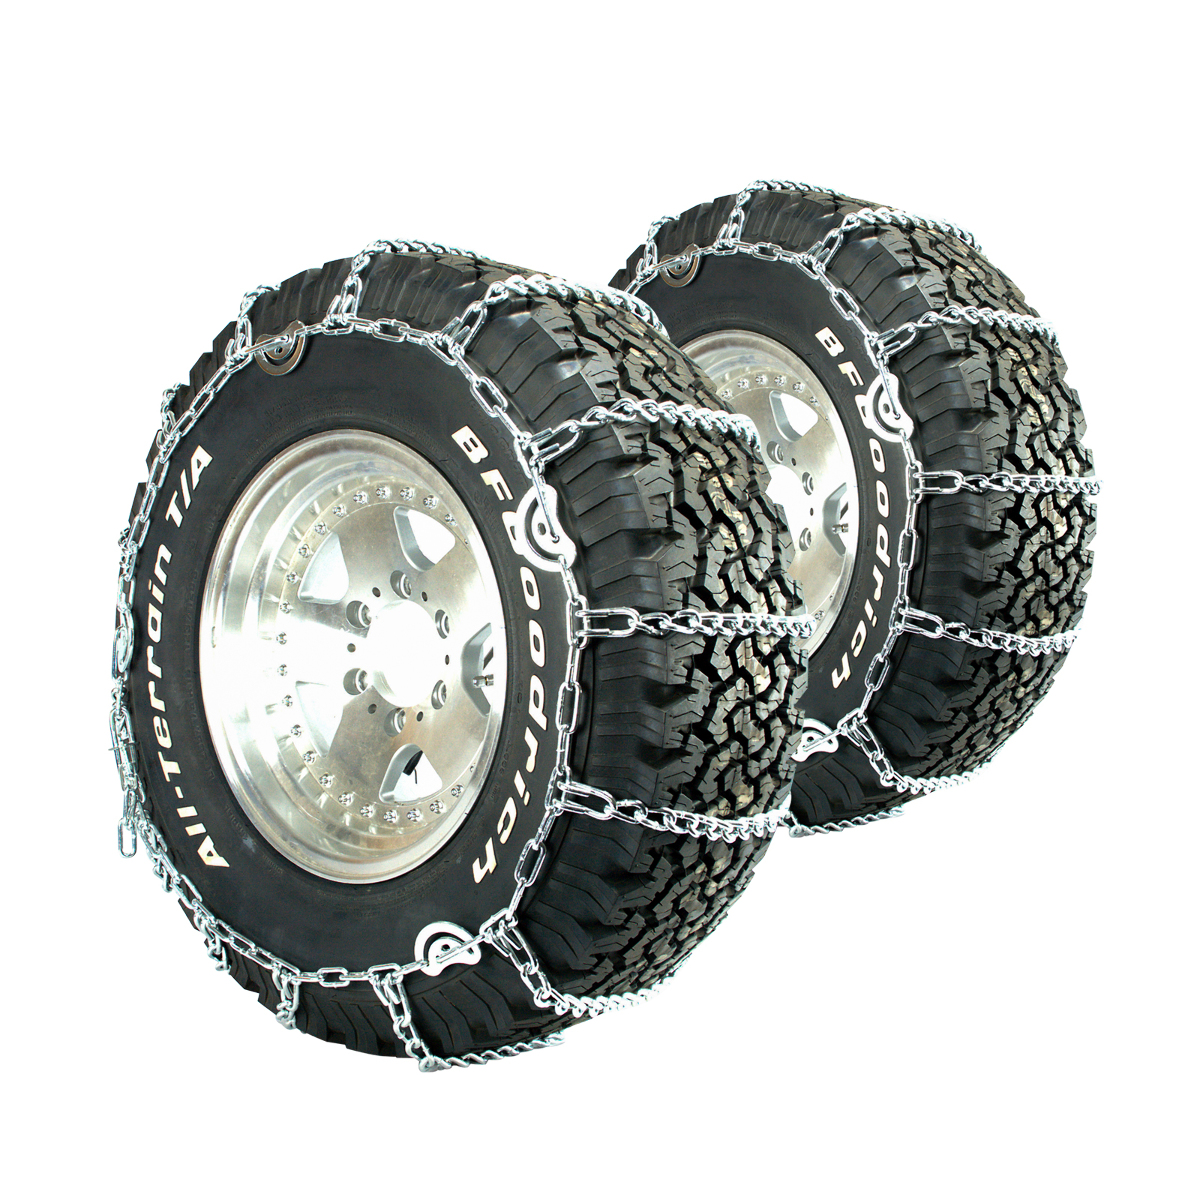 Titan Truck Link Tire Chains Cam Type On Road Snowice 55mm 26575